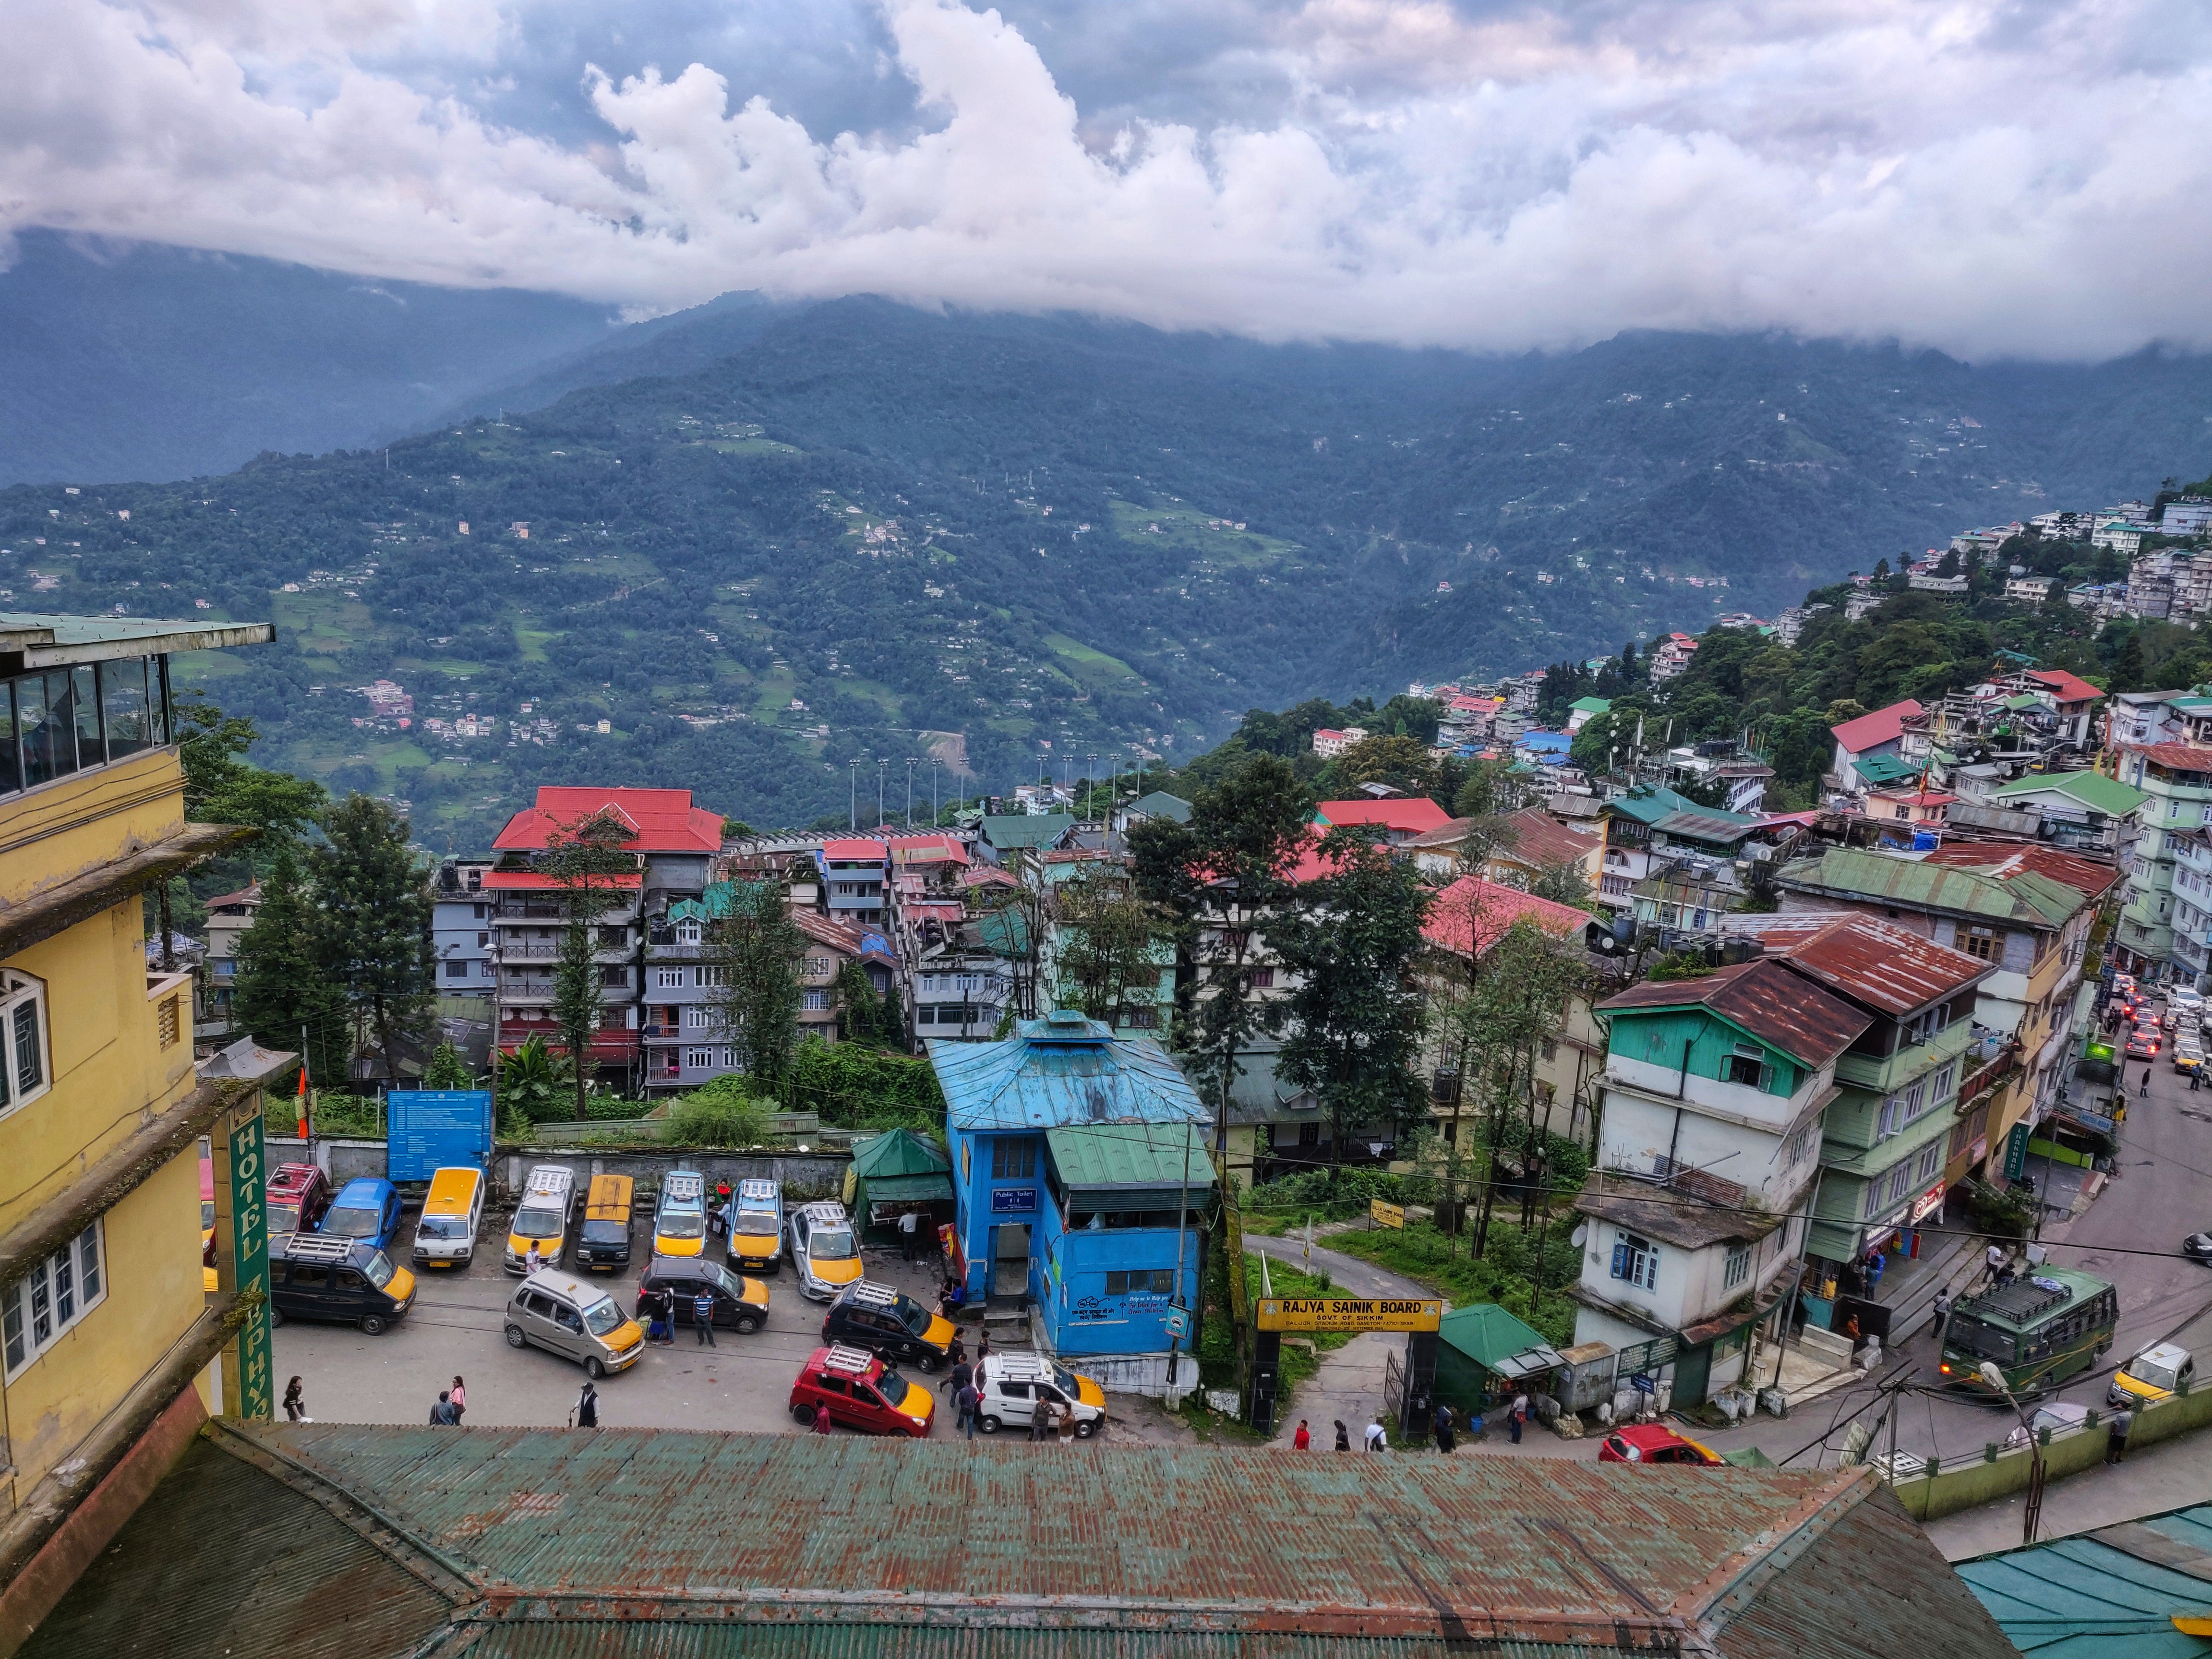 One Typho at a Time: Conversations Over Breakfast in Gangtok